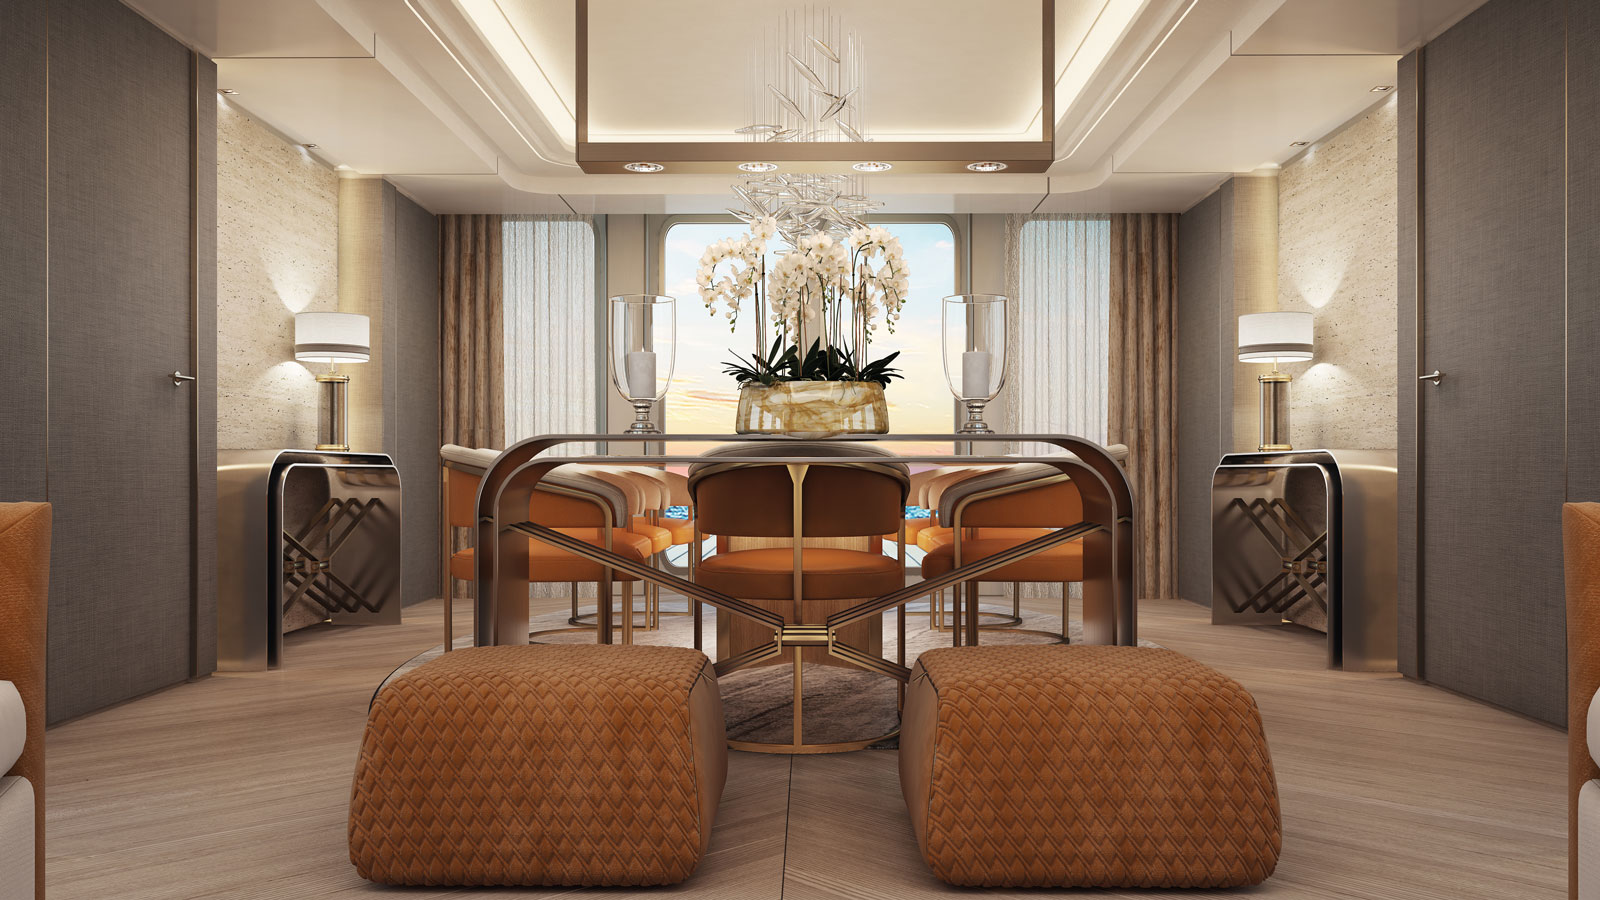 amels-200-dining-area